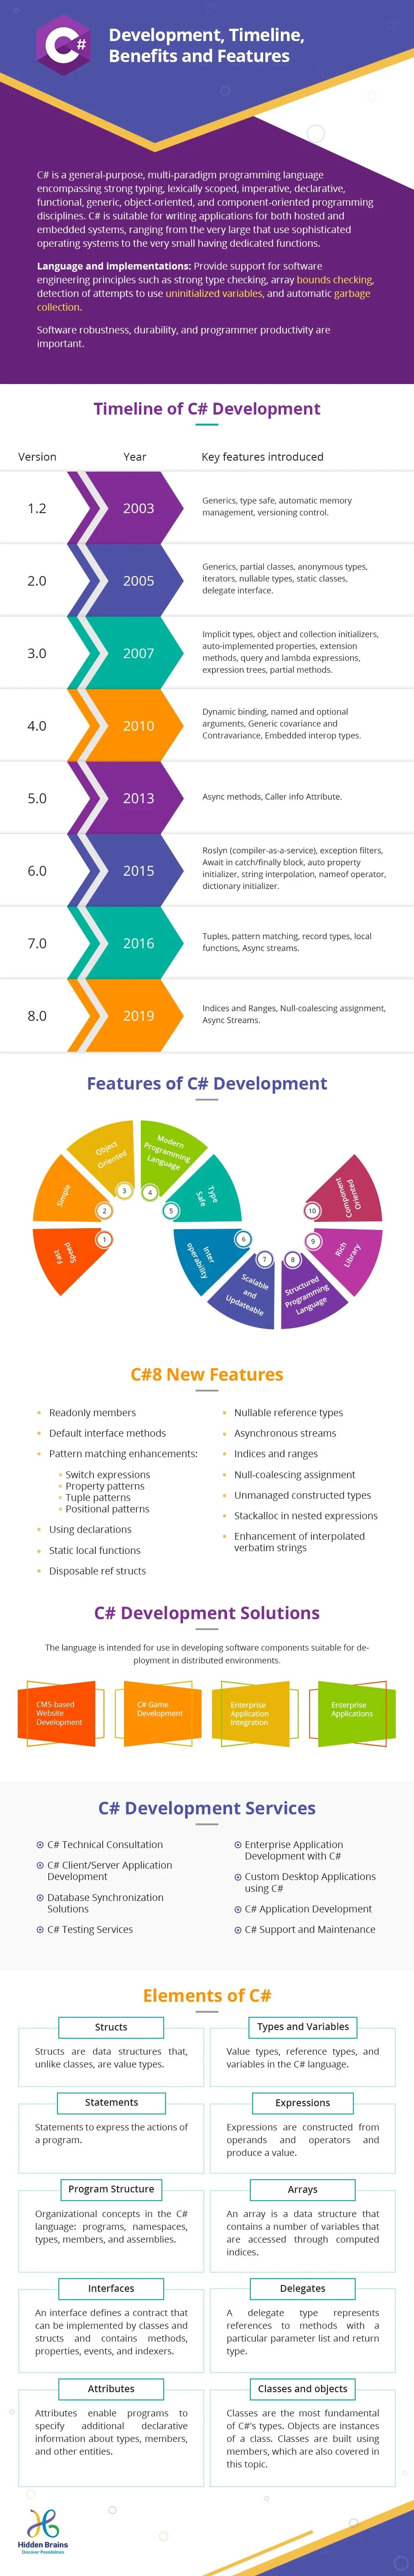 C Development Timeline Benefits and Features